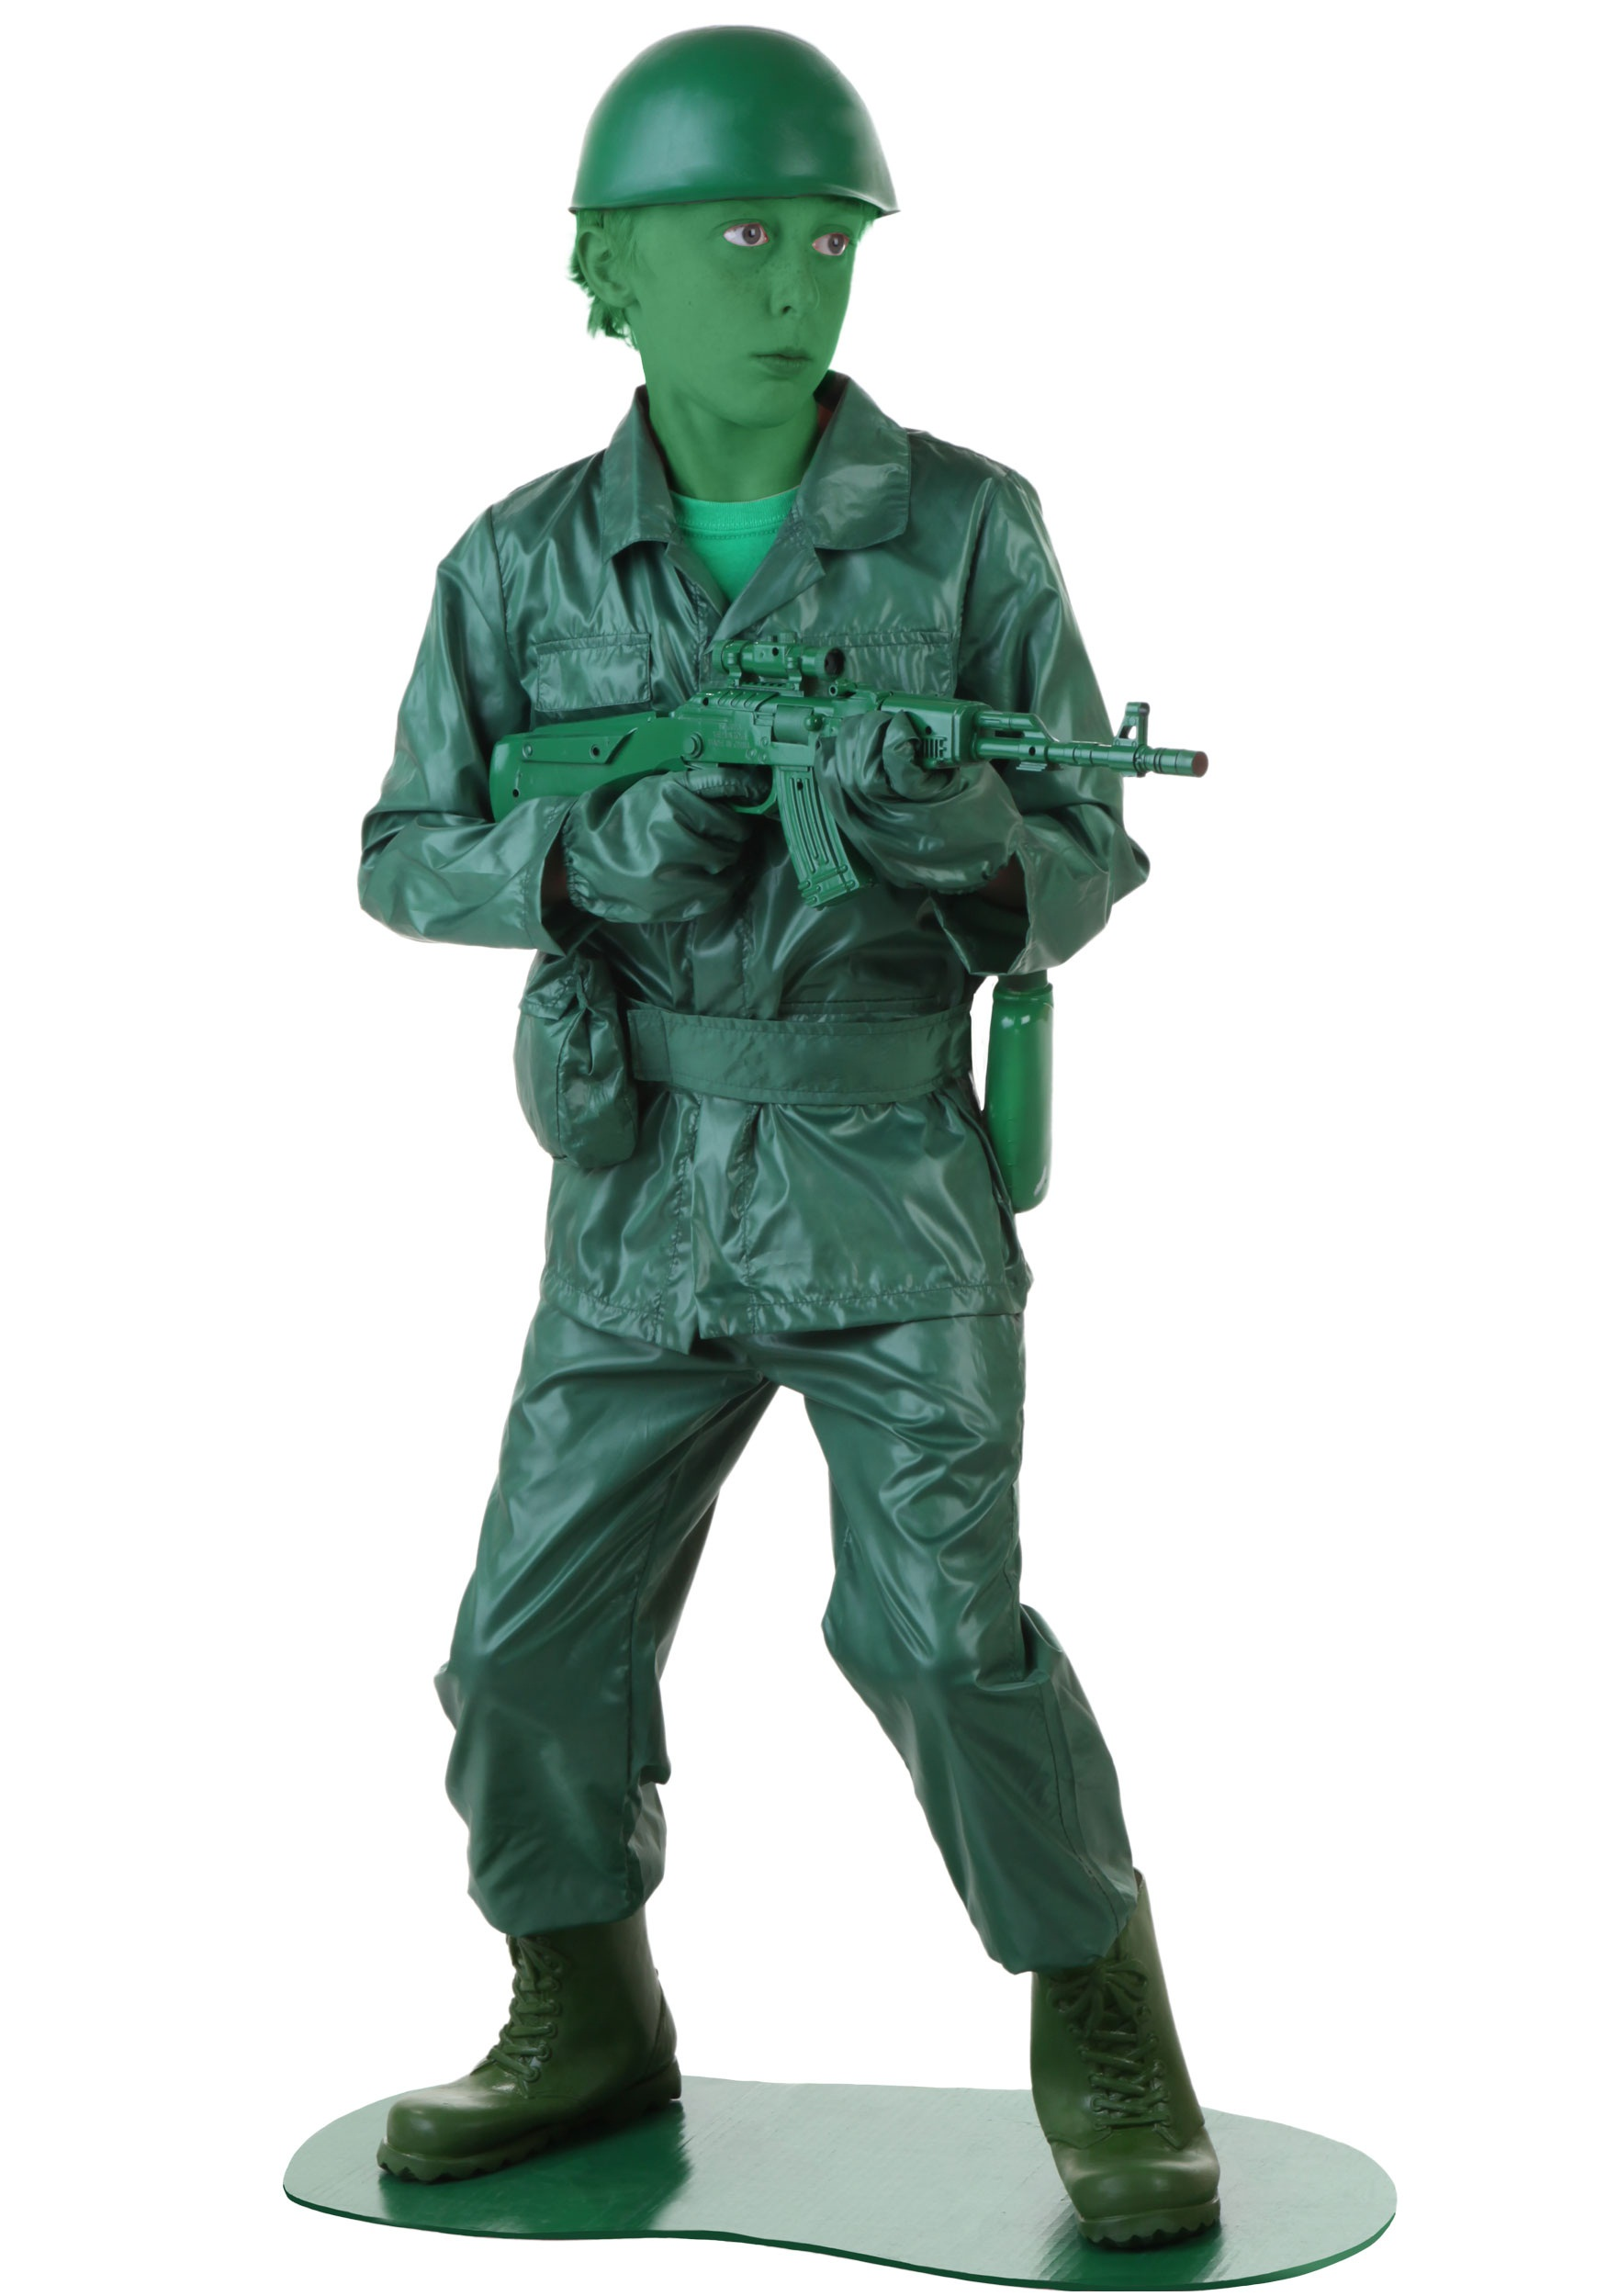 Toy Soldiers For Boys : Child green army man costume